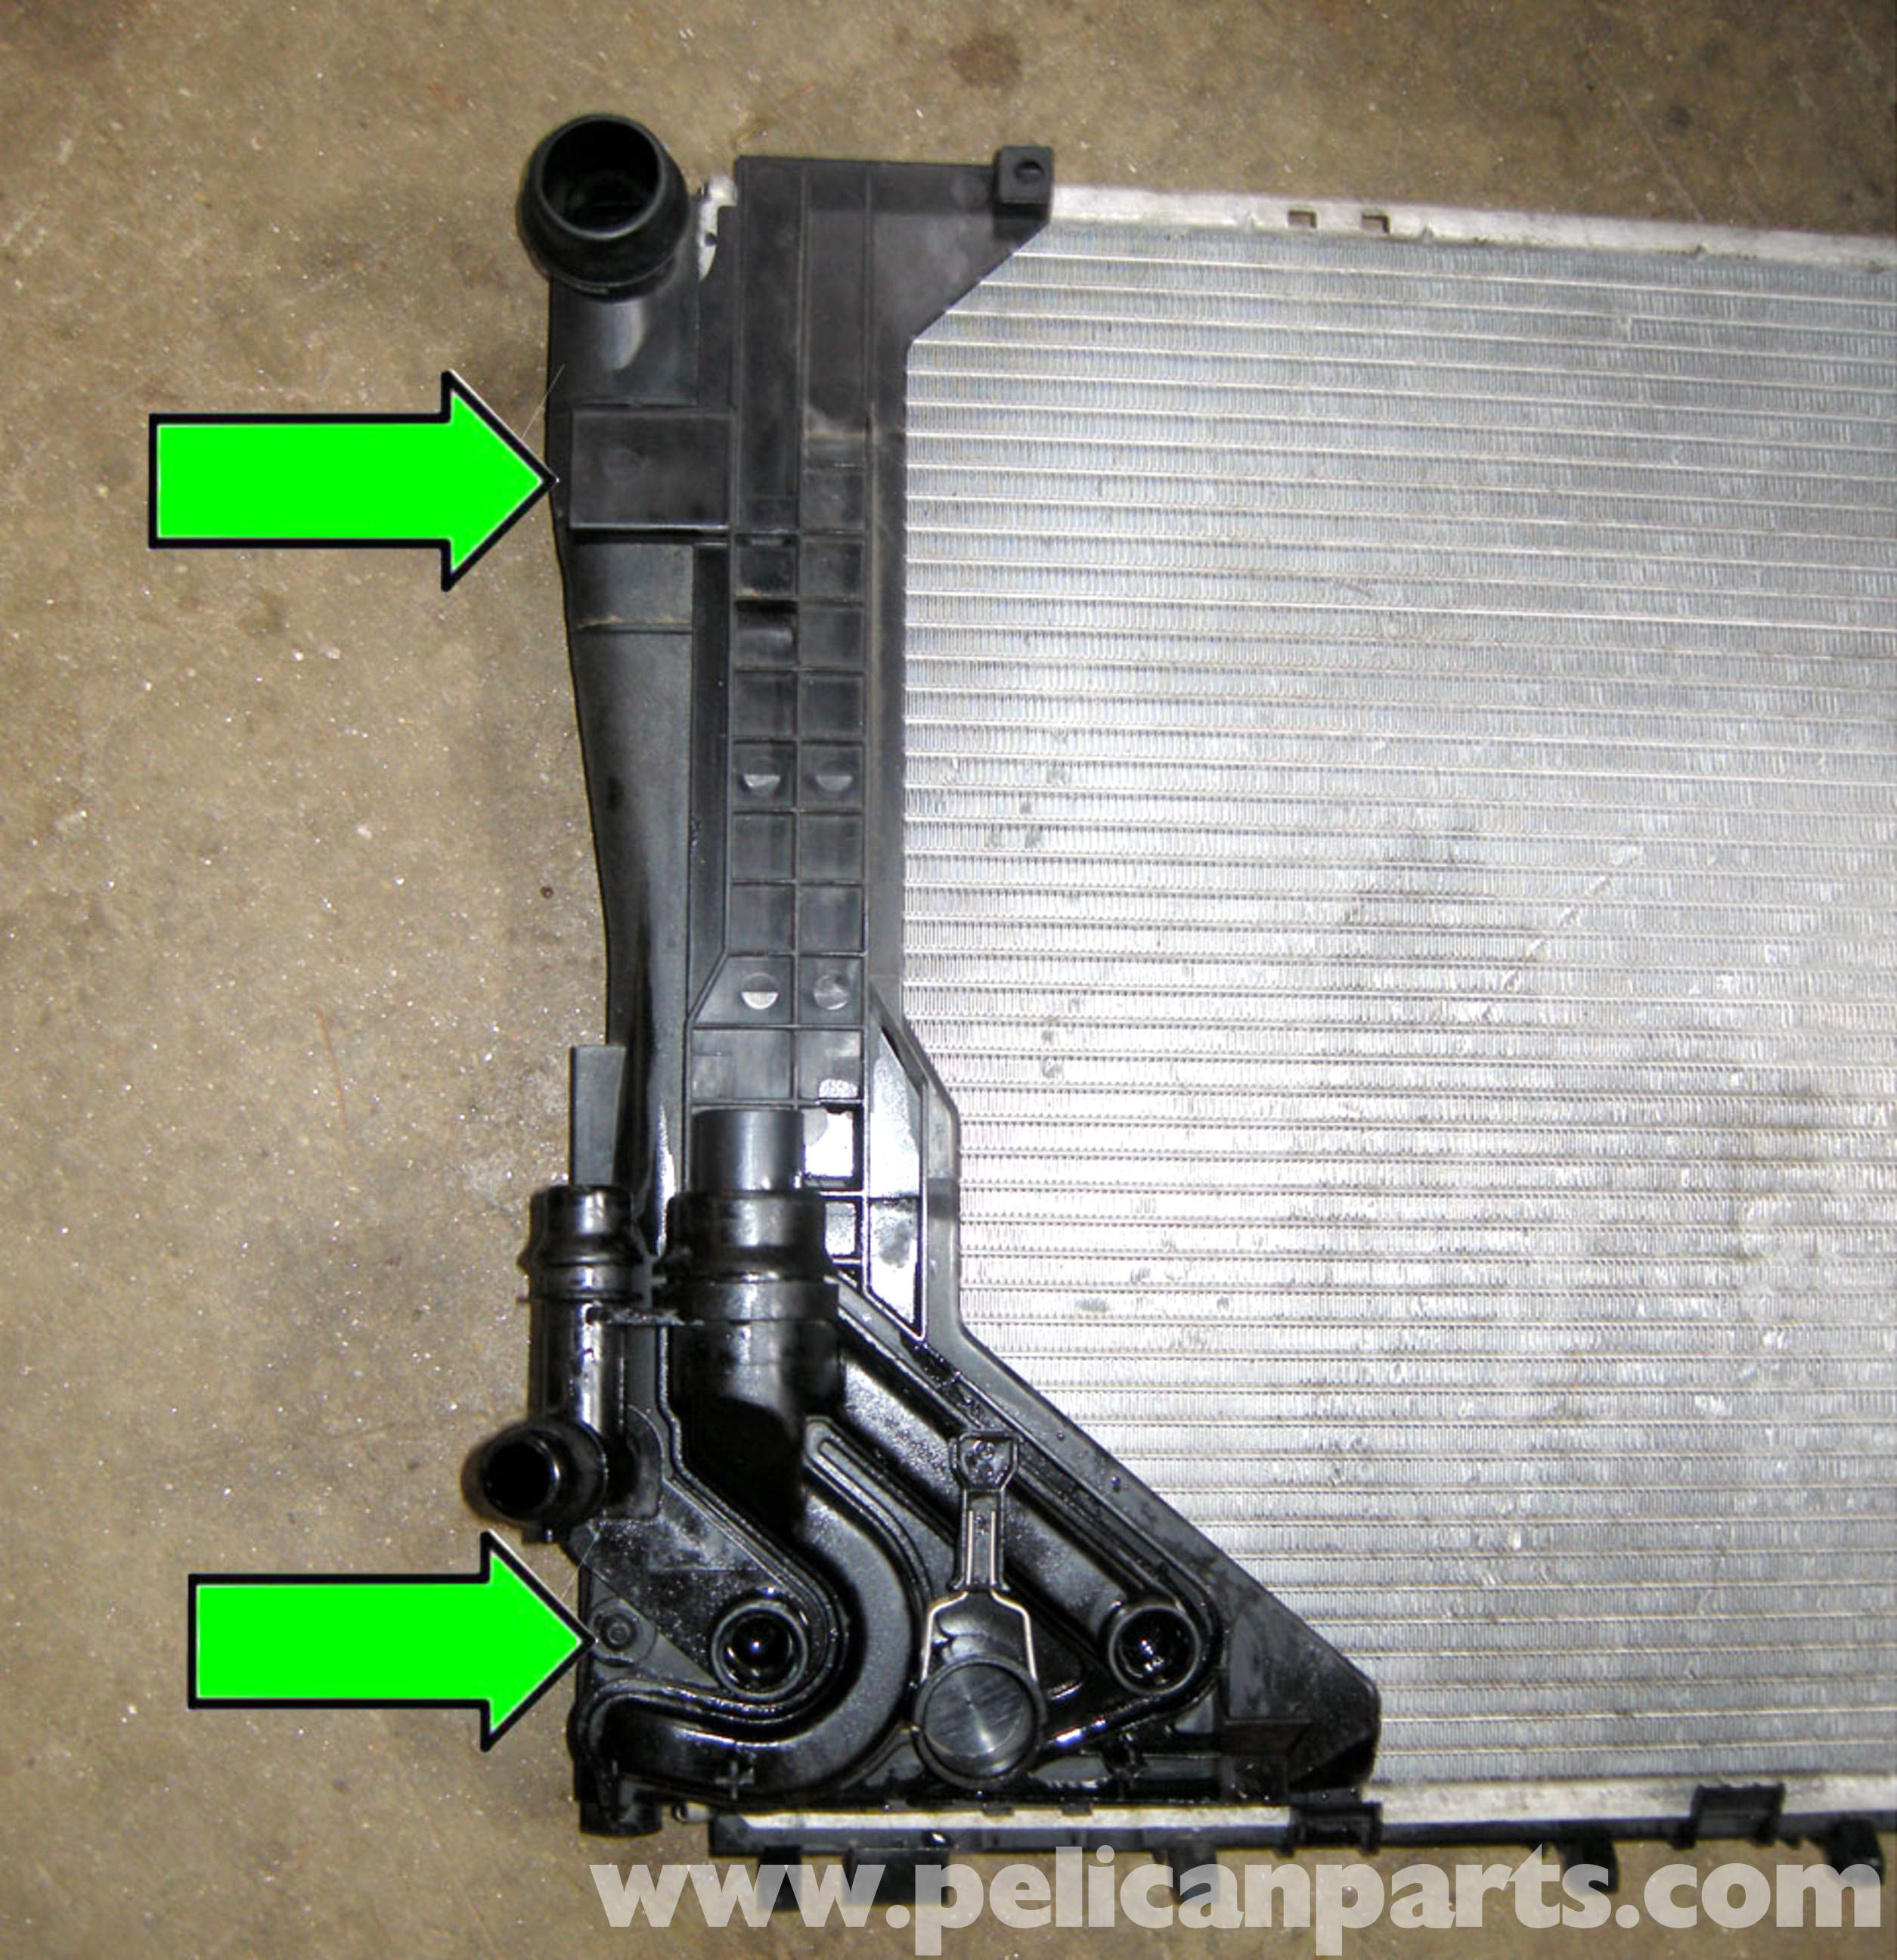 pic07 bmw e46 radiator replacement bmw 325i (2001 2005), bmw 325xi (2001